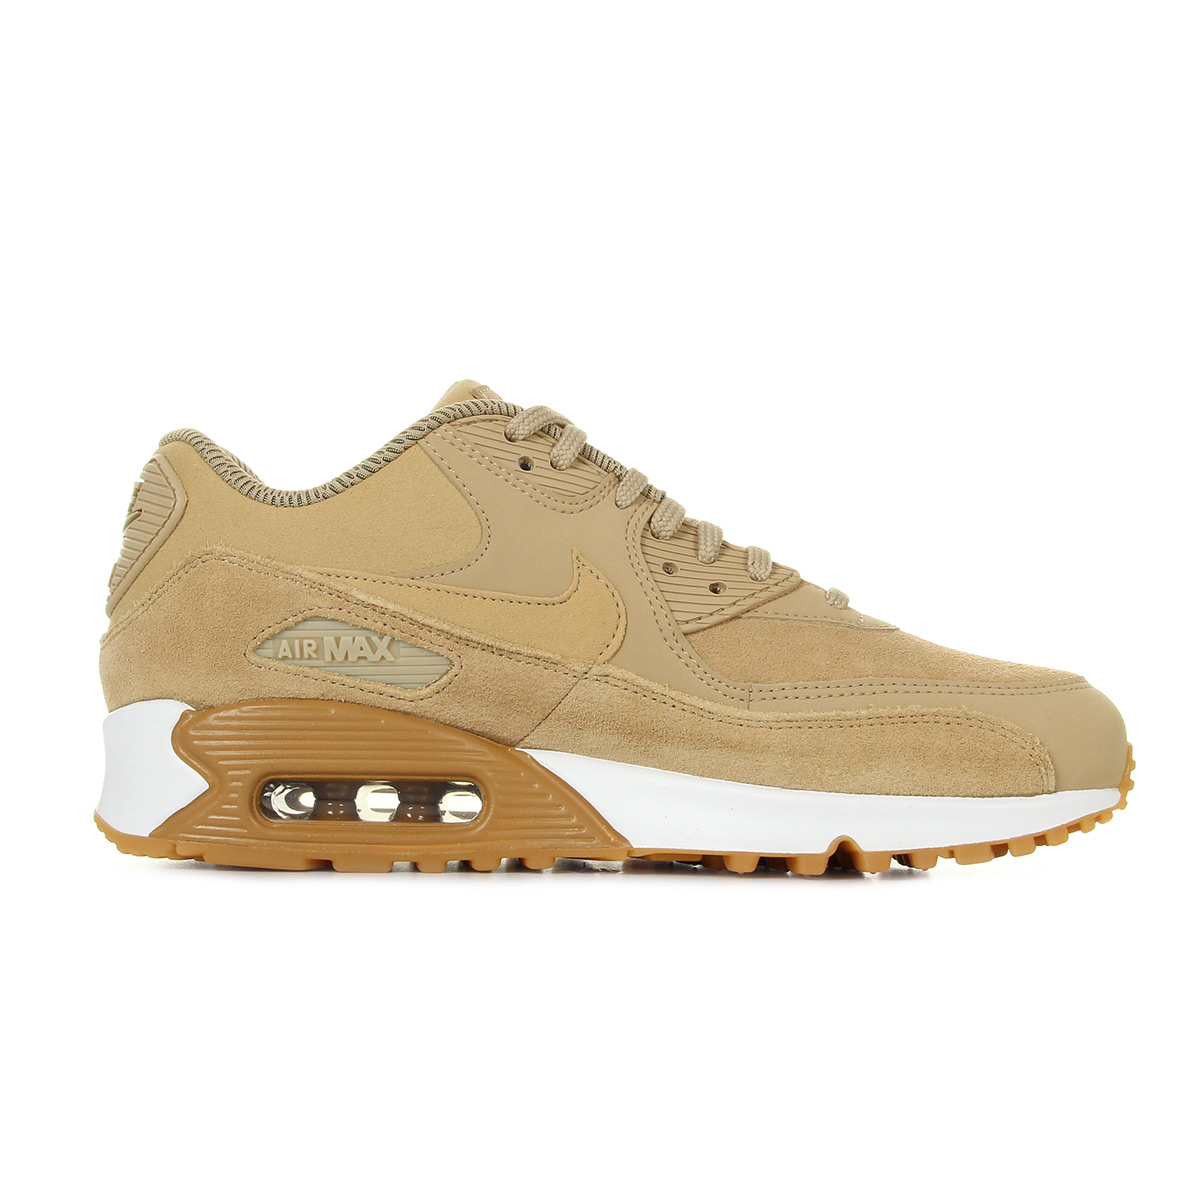 Nike WMNS Air Max 90 SE Mushroom 881105200, Baskets mode